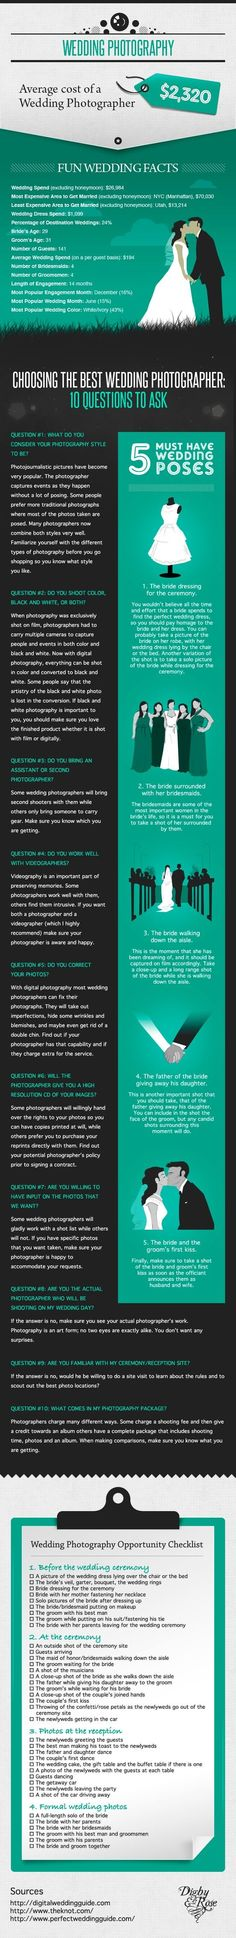 What to look for in wedding photography. Checklist for must-have poses.